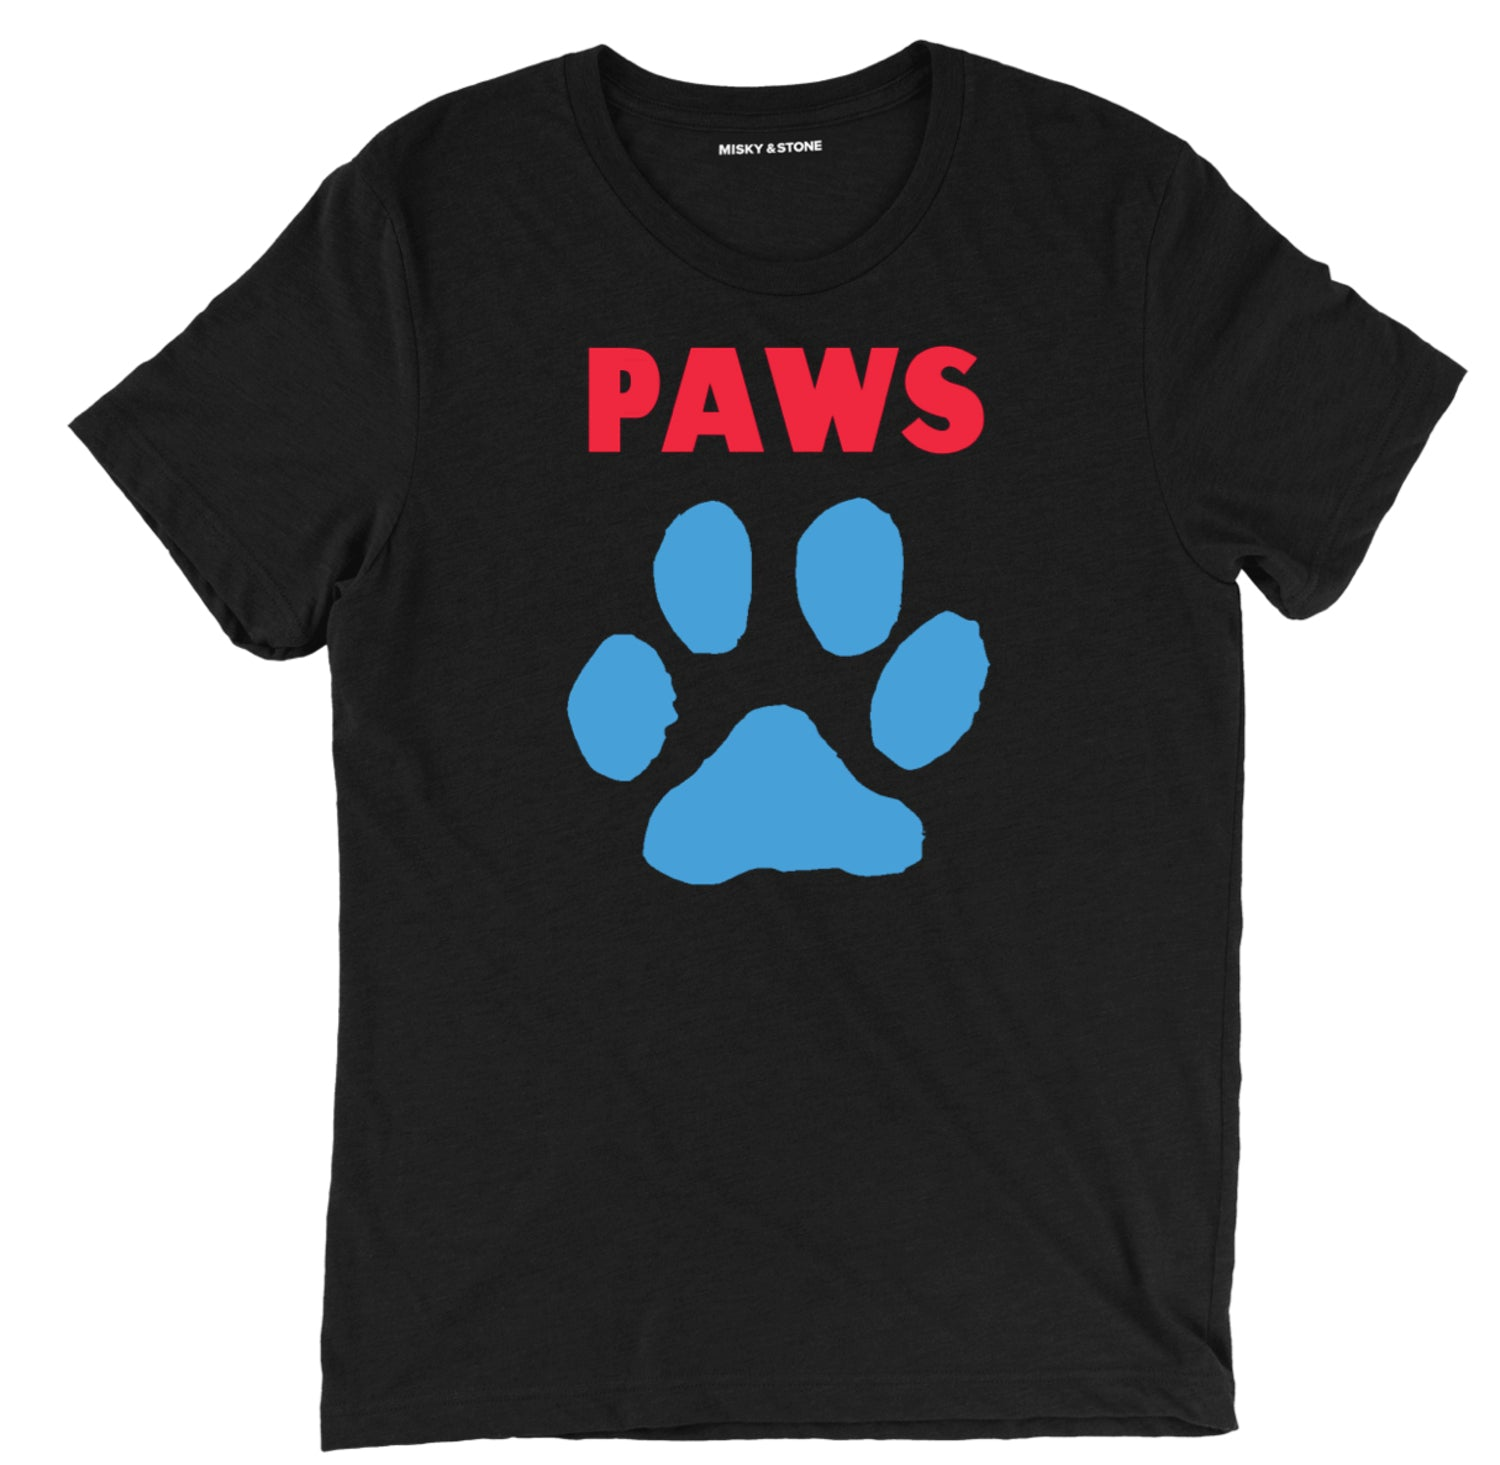 paws animal lover tee shirt, paws cat animal lover apparel, paws dog animal lover merch, paws animal lover clothing